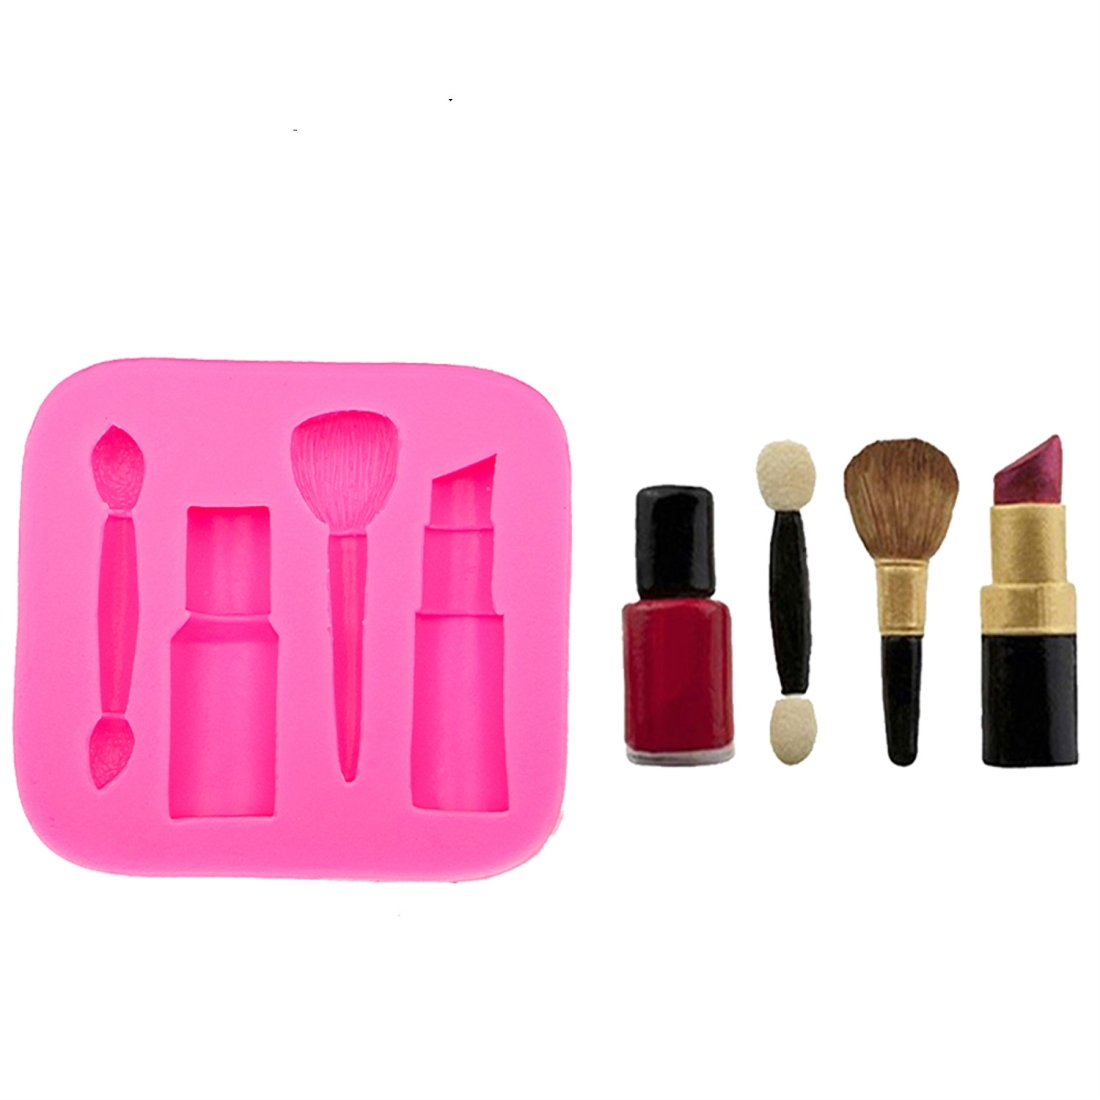 2 PCS Lipstick Eyebrow Pencil Makeup Tool Shape Silicone Fondant Cake Mold Chocolate Mold Clay Mold